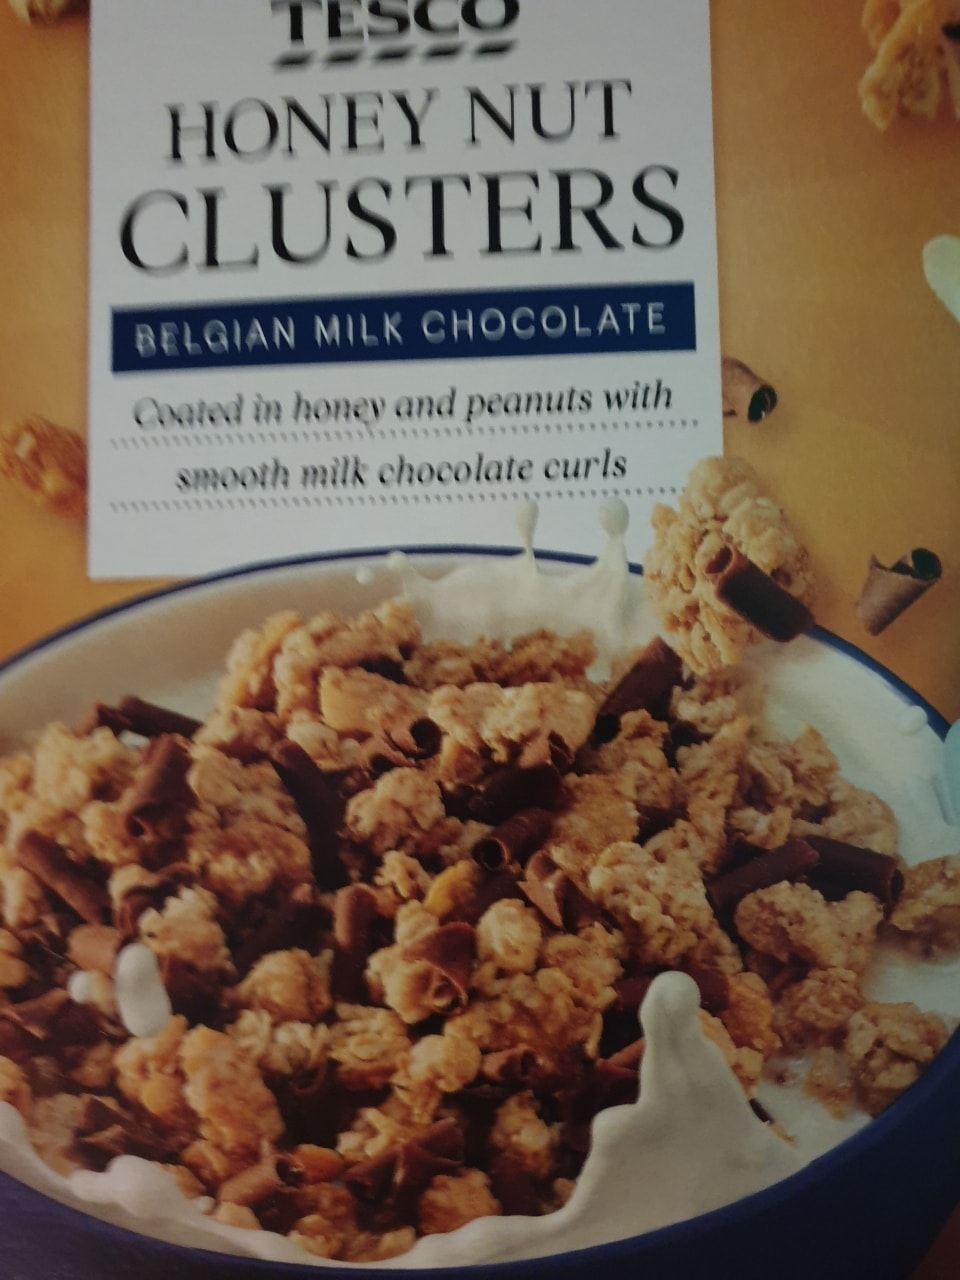 Honey nut cereal with chocolate